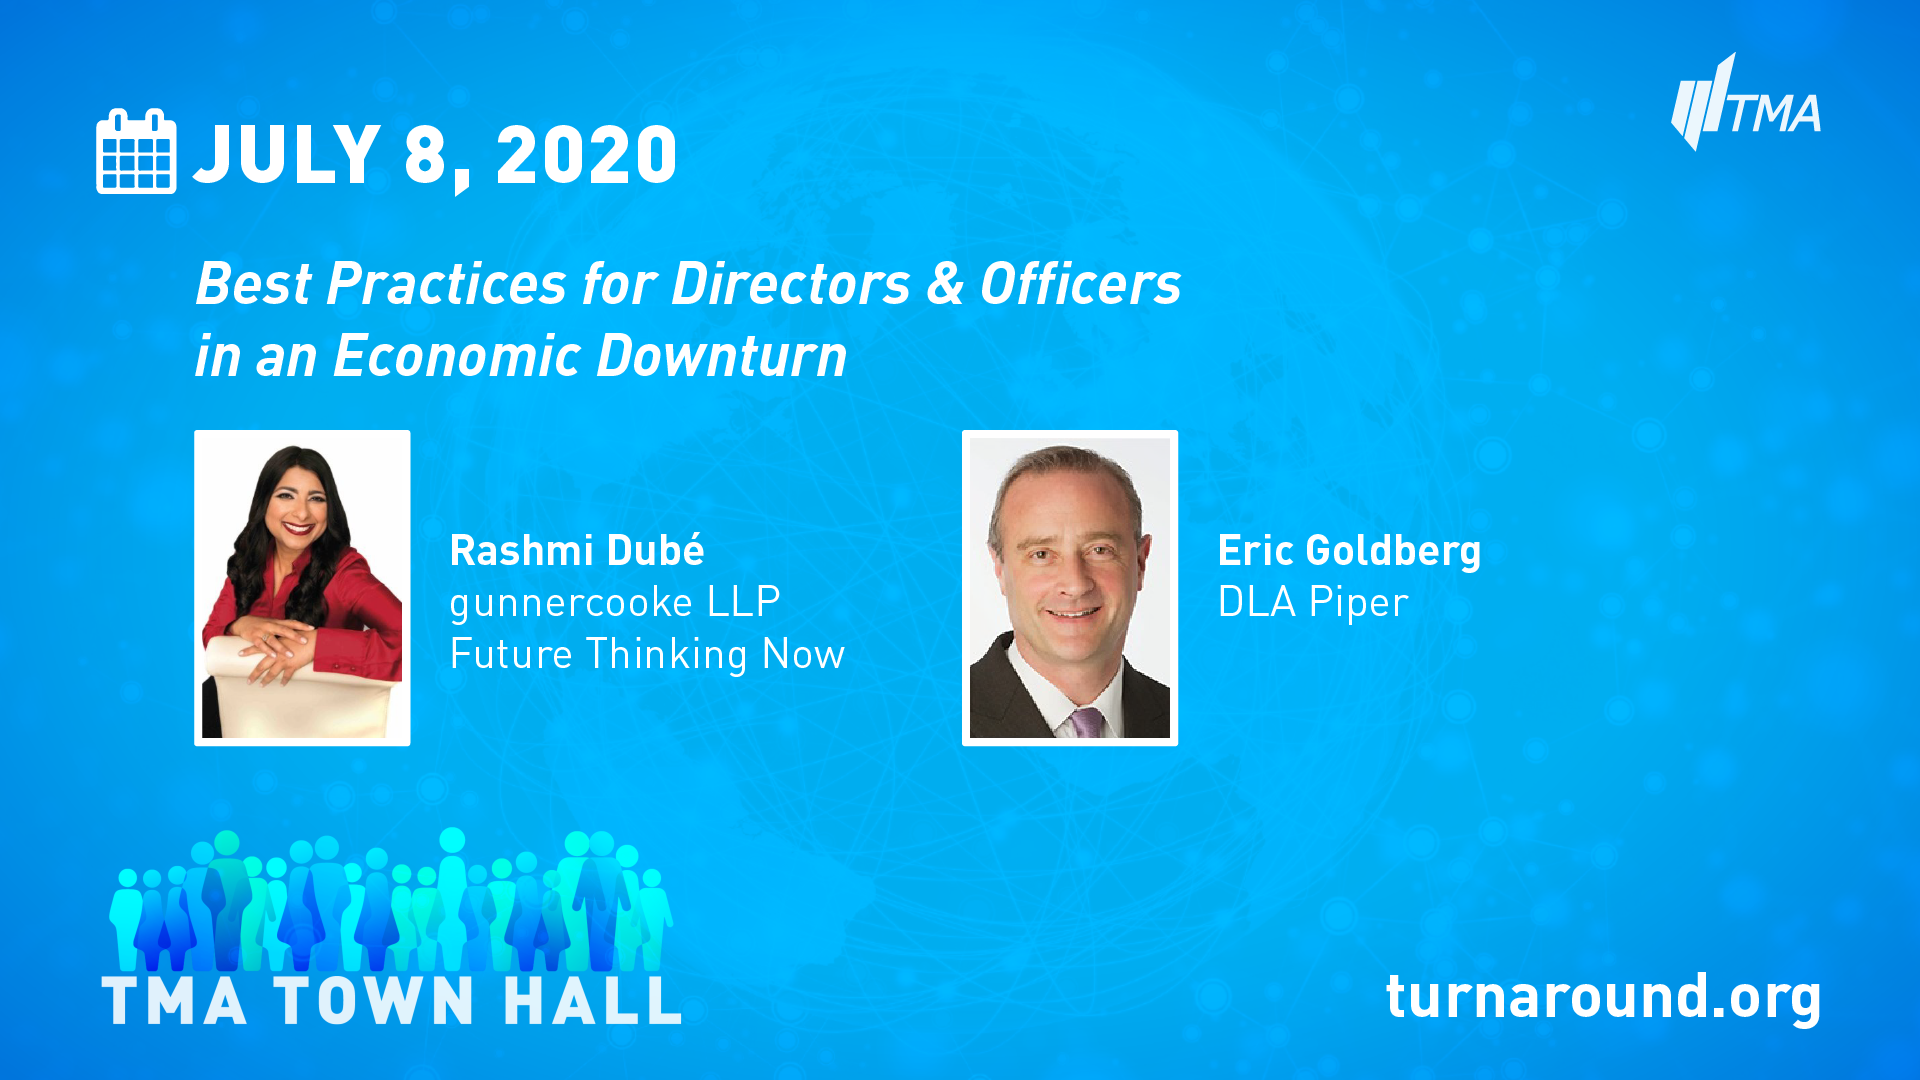 TMA Town Hall for July 8, 2020